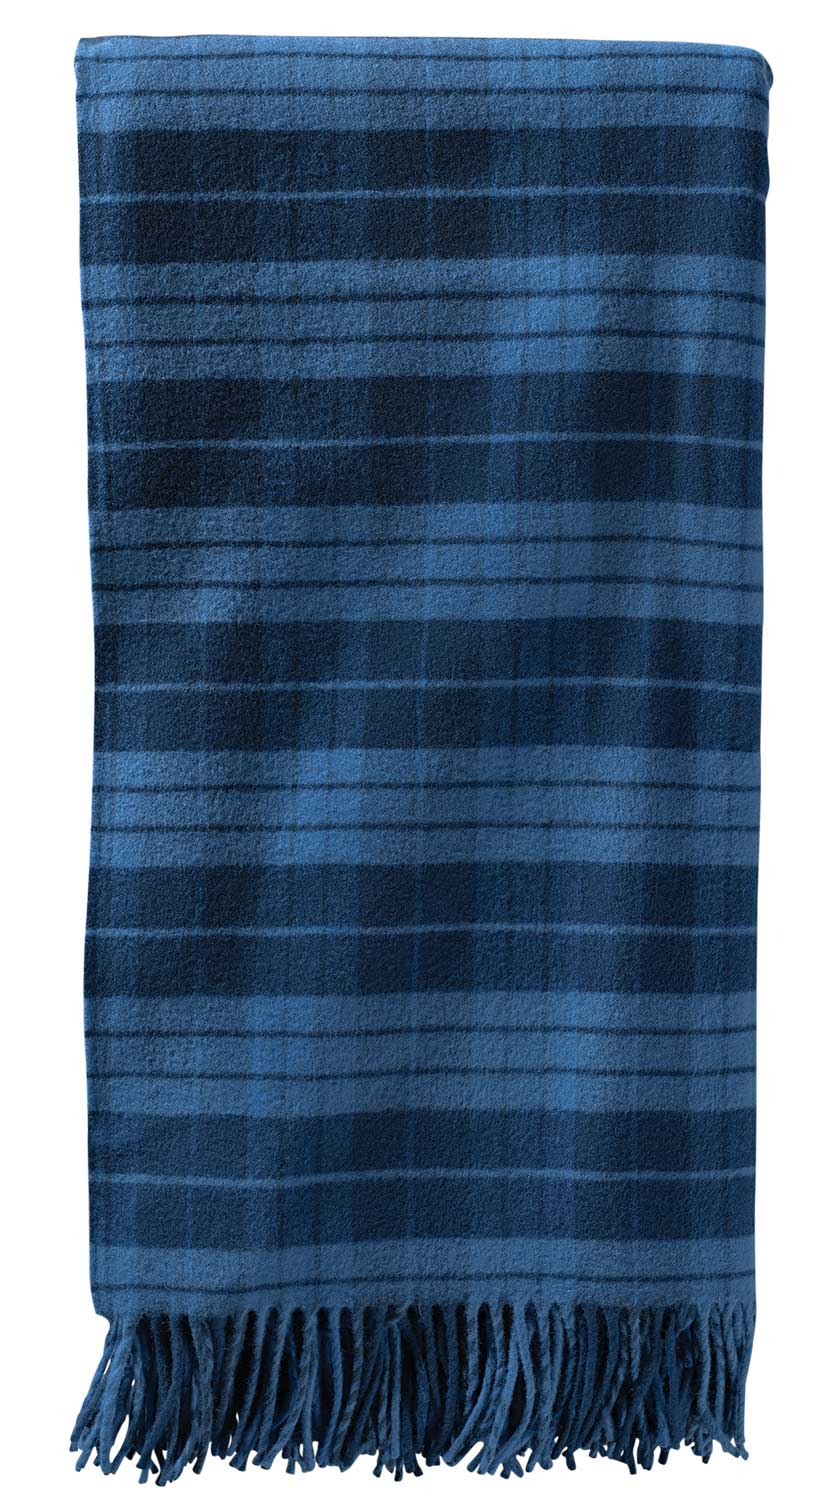 5th Avenue Throw - Pendleton Plaid